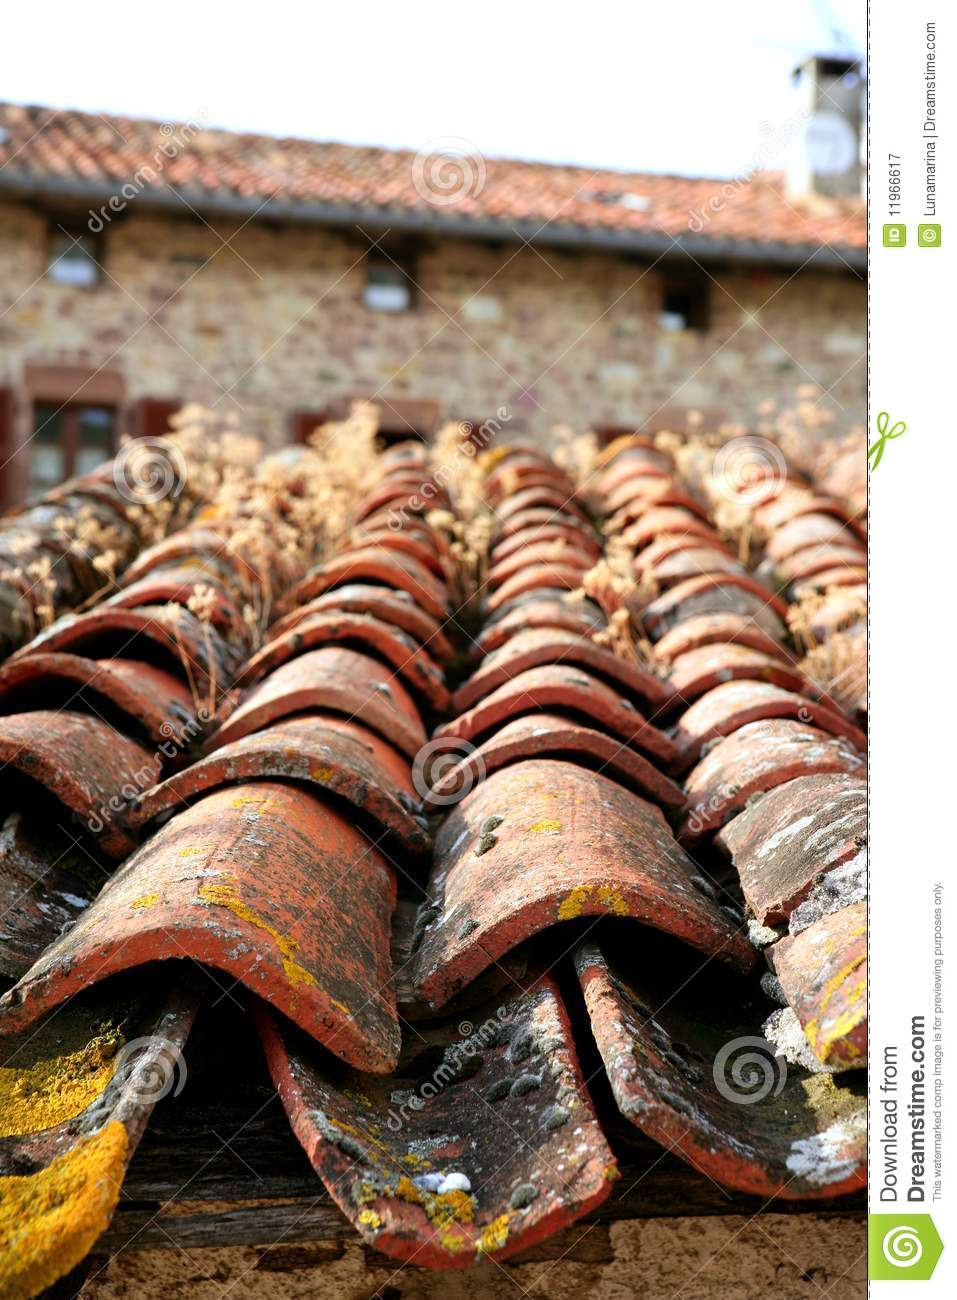 Architectural Detail Of Grunge Roof Tiles Royalty Free